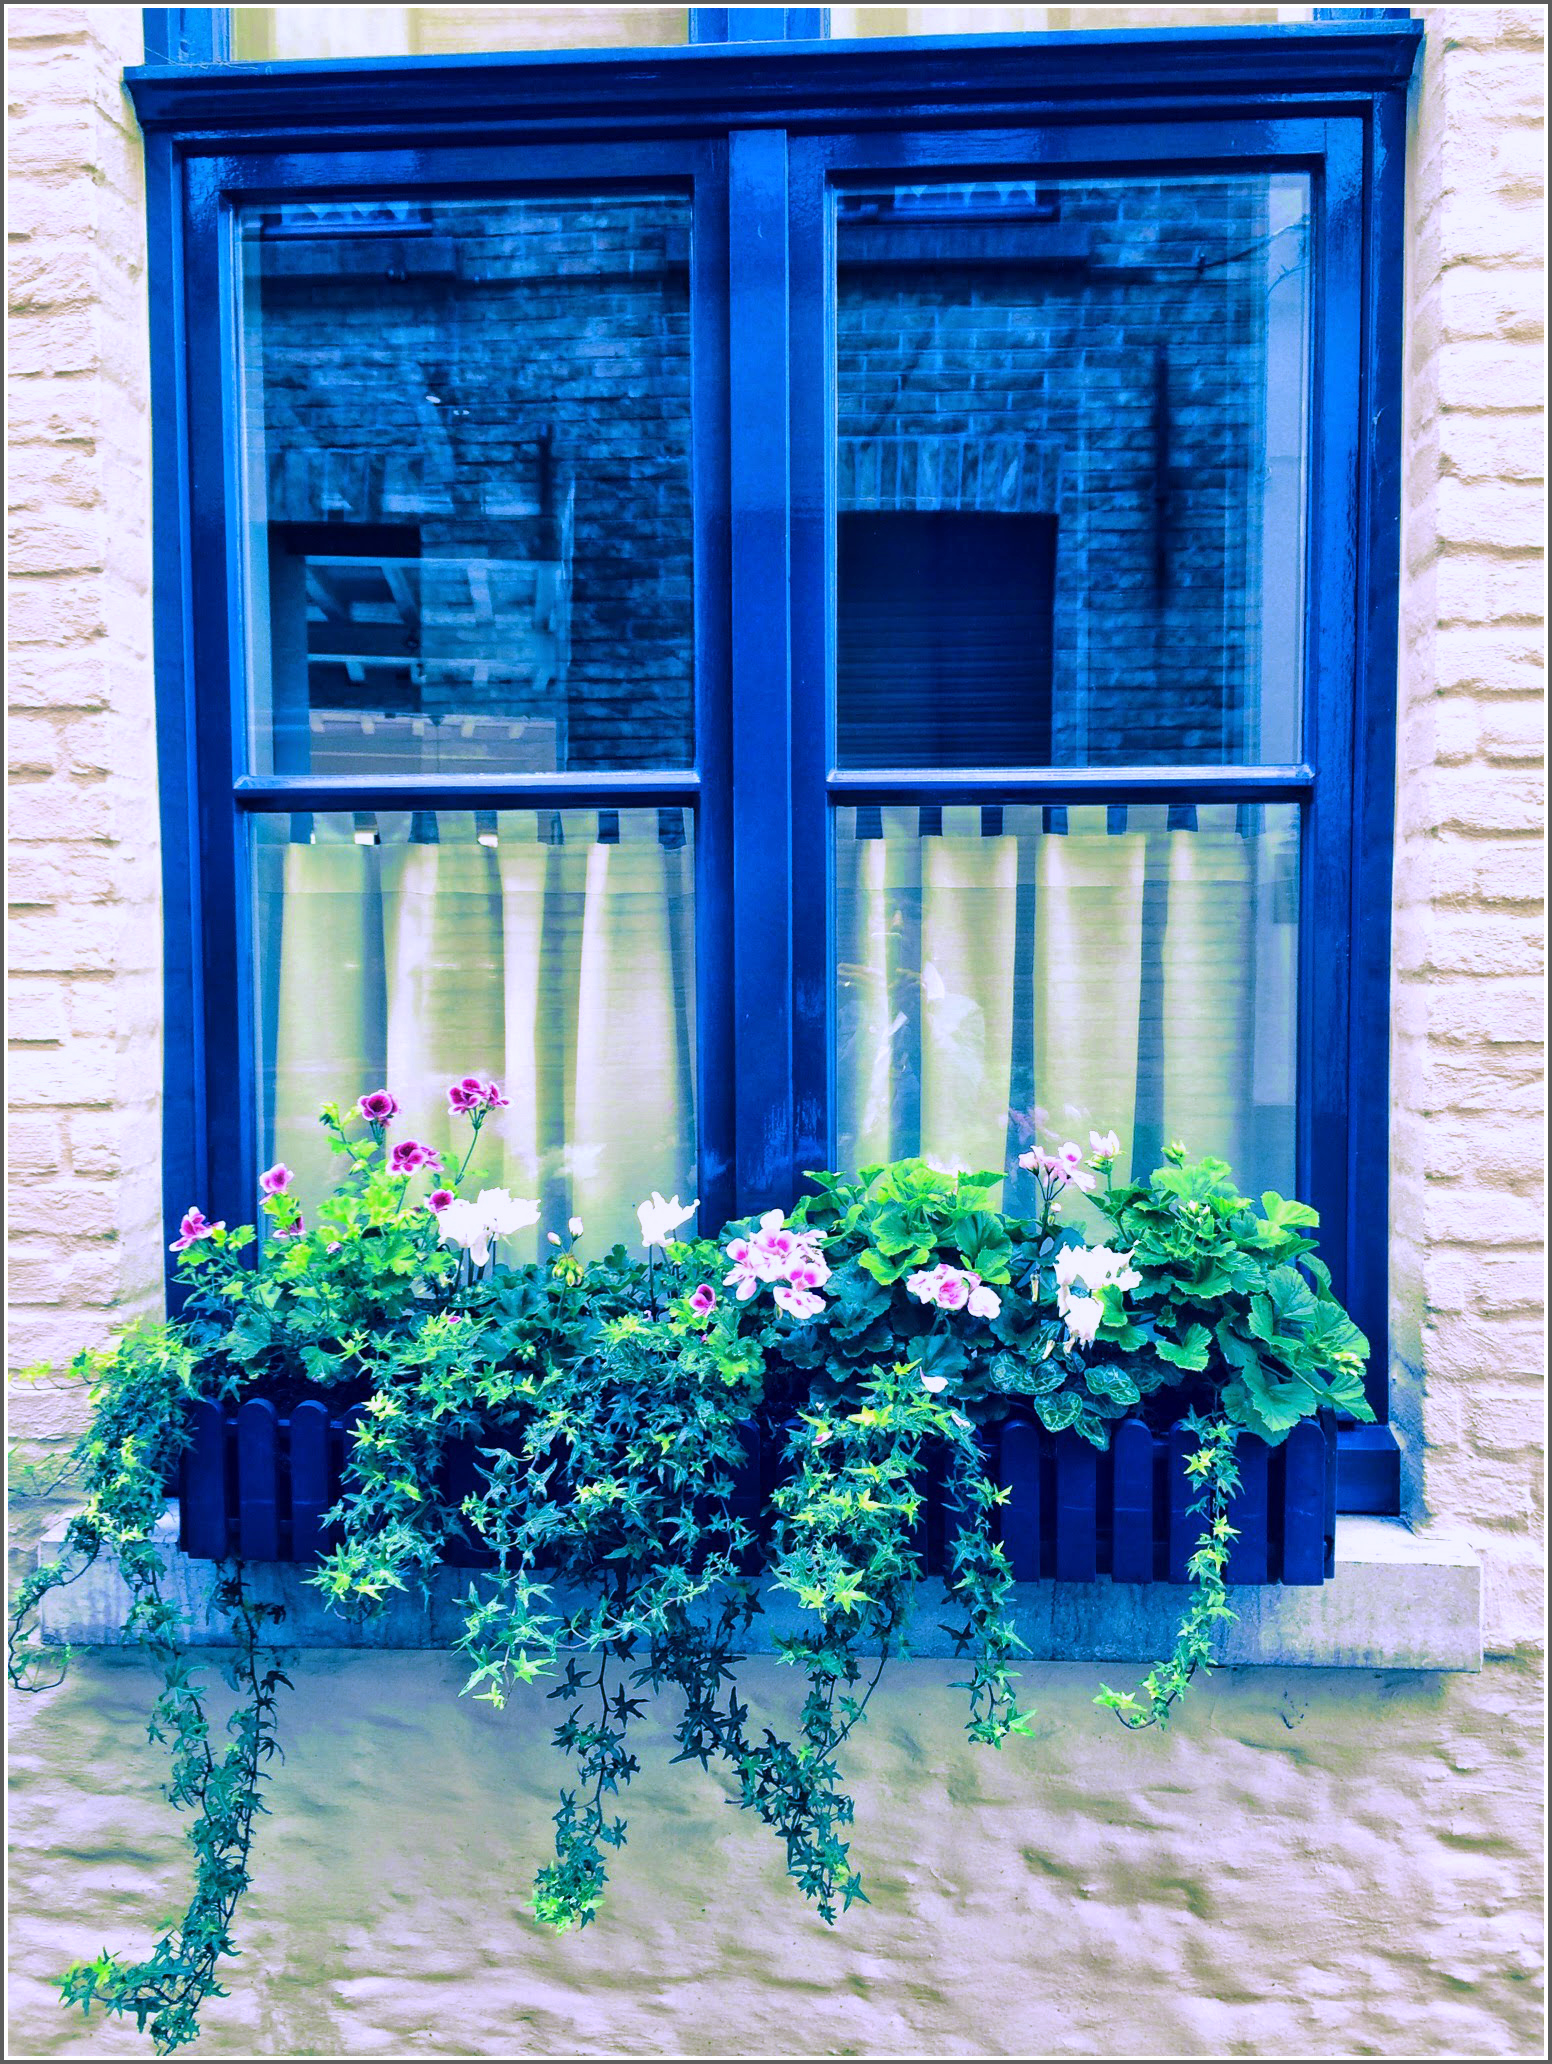 Bruges Window Box 1 Dena T Bray©